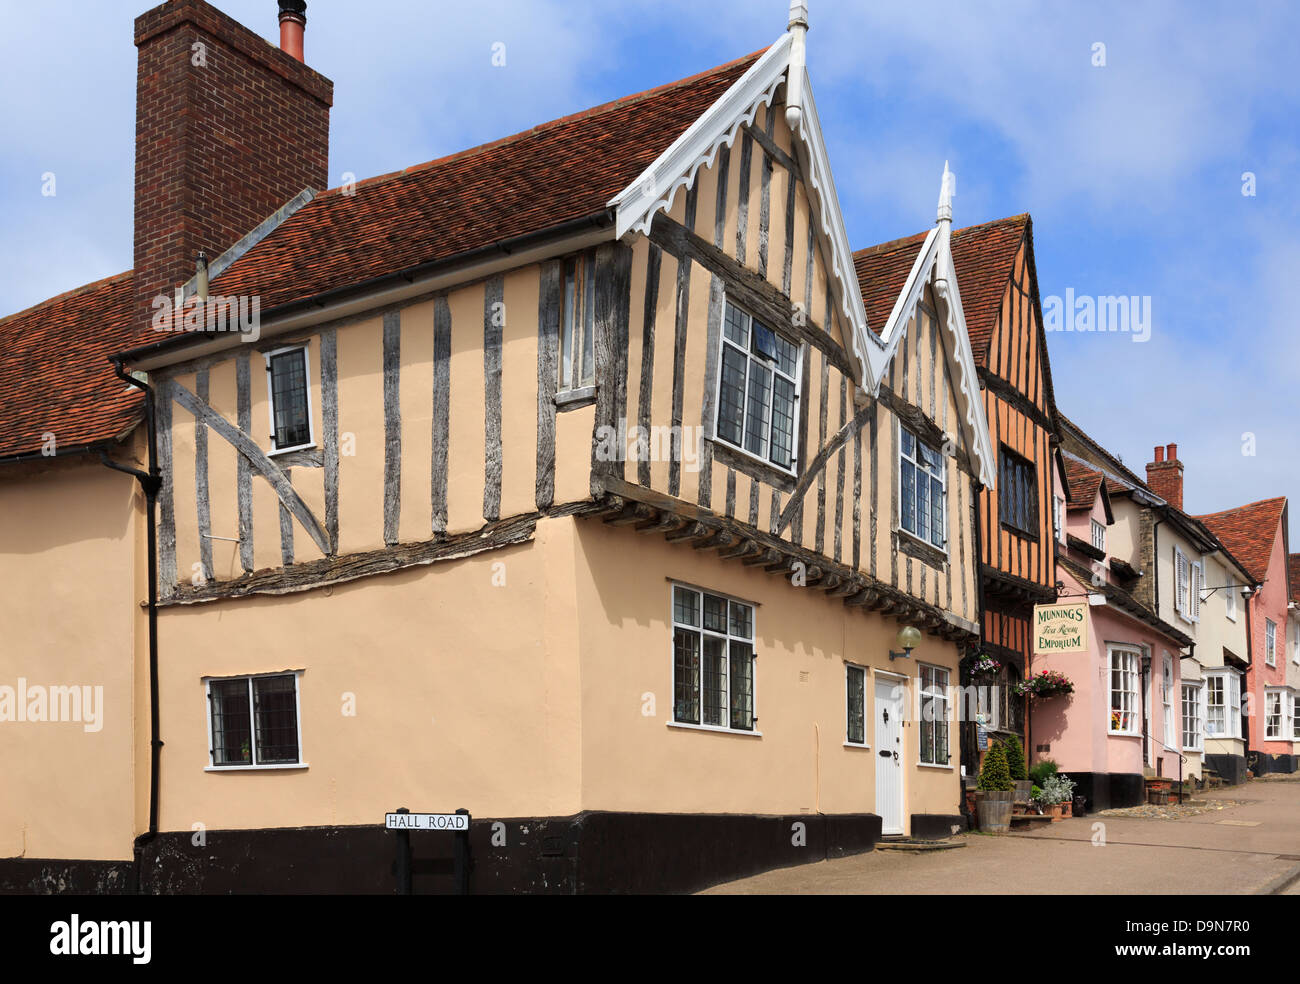 Timbered buildings in medieval village. High Street, Lavenham, Suffolk, England, UK, Britain - Stock Image